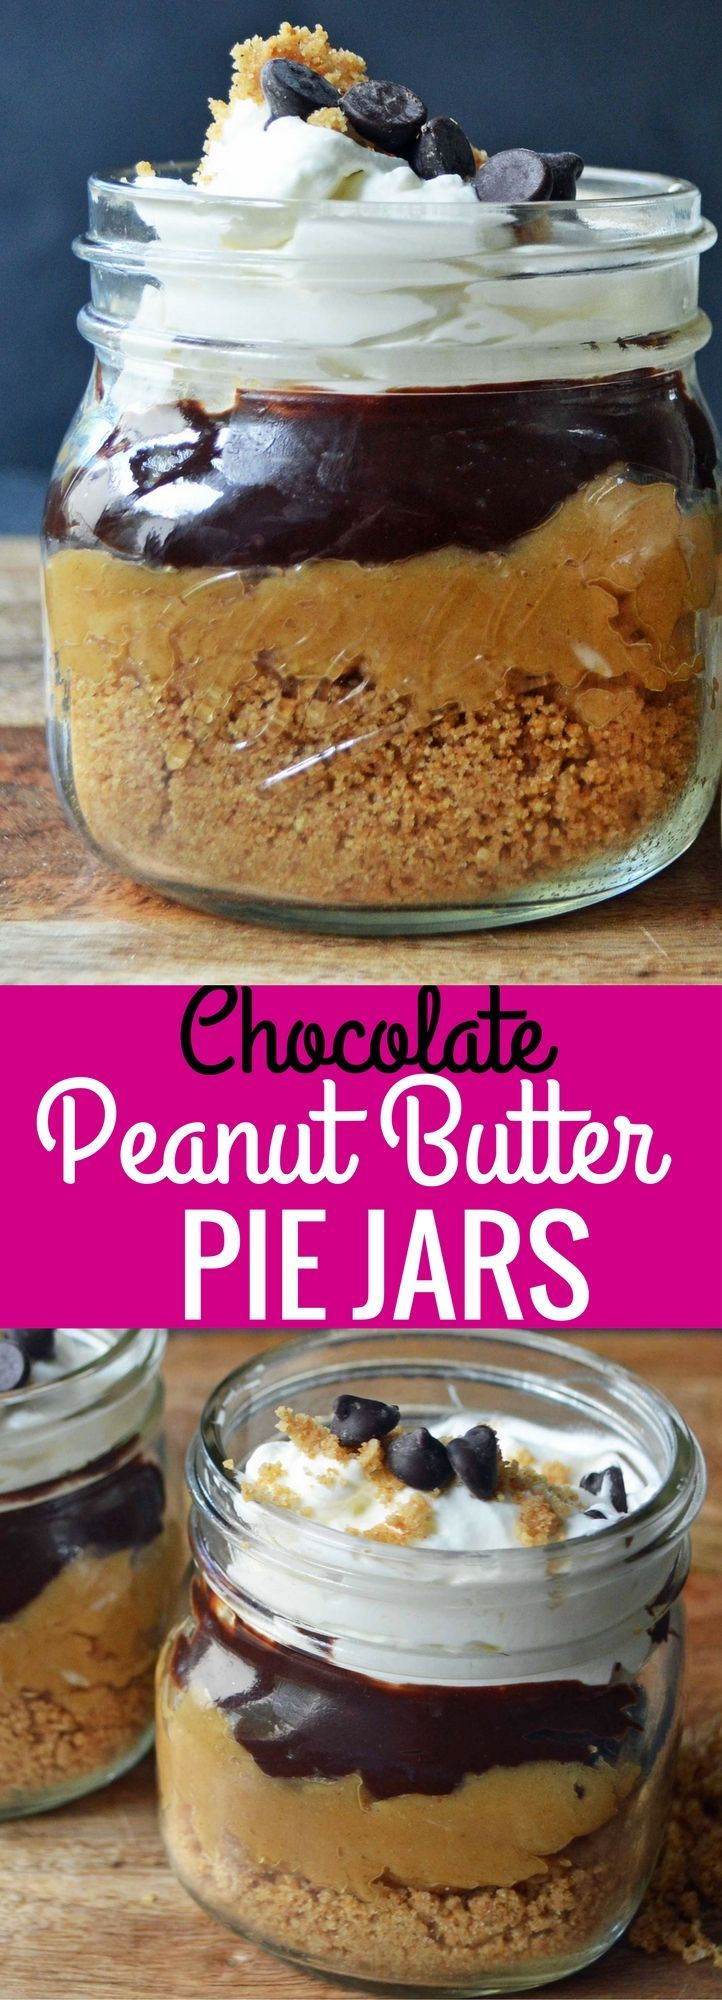 Chocolate Peanut Butter Cream Pie Jars. Graham Cracker Crust, Peanut Butter Cream, Chocolate Ganache, and Whipped Cream all in one jar. The chocolate peanut butter lovers will go crazy over this dessert! Pie in a jar is so easy! http://www.modernhoney.com